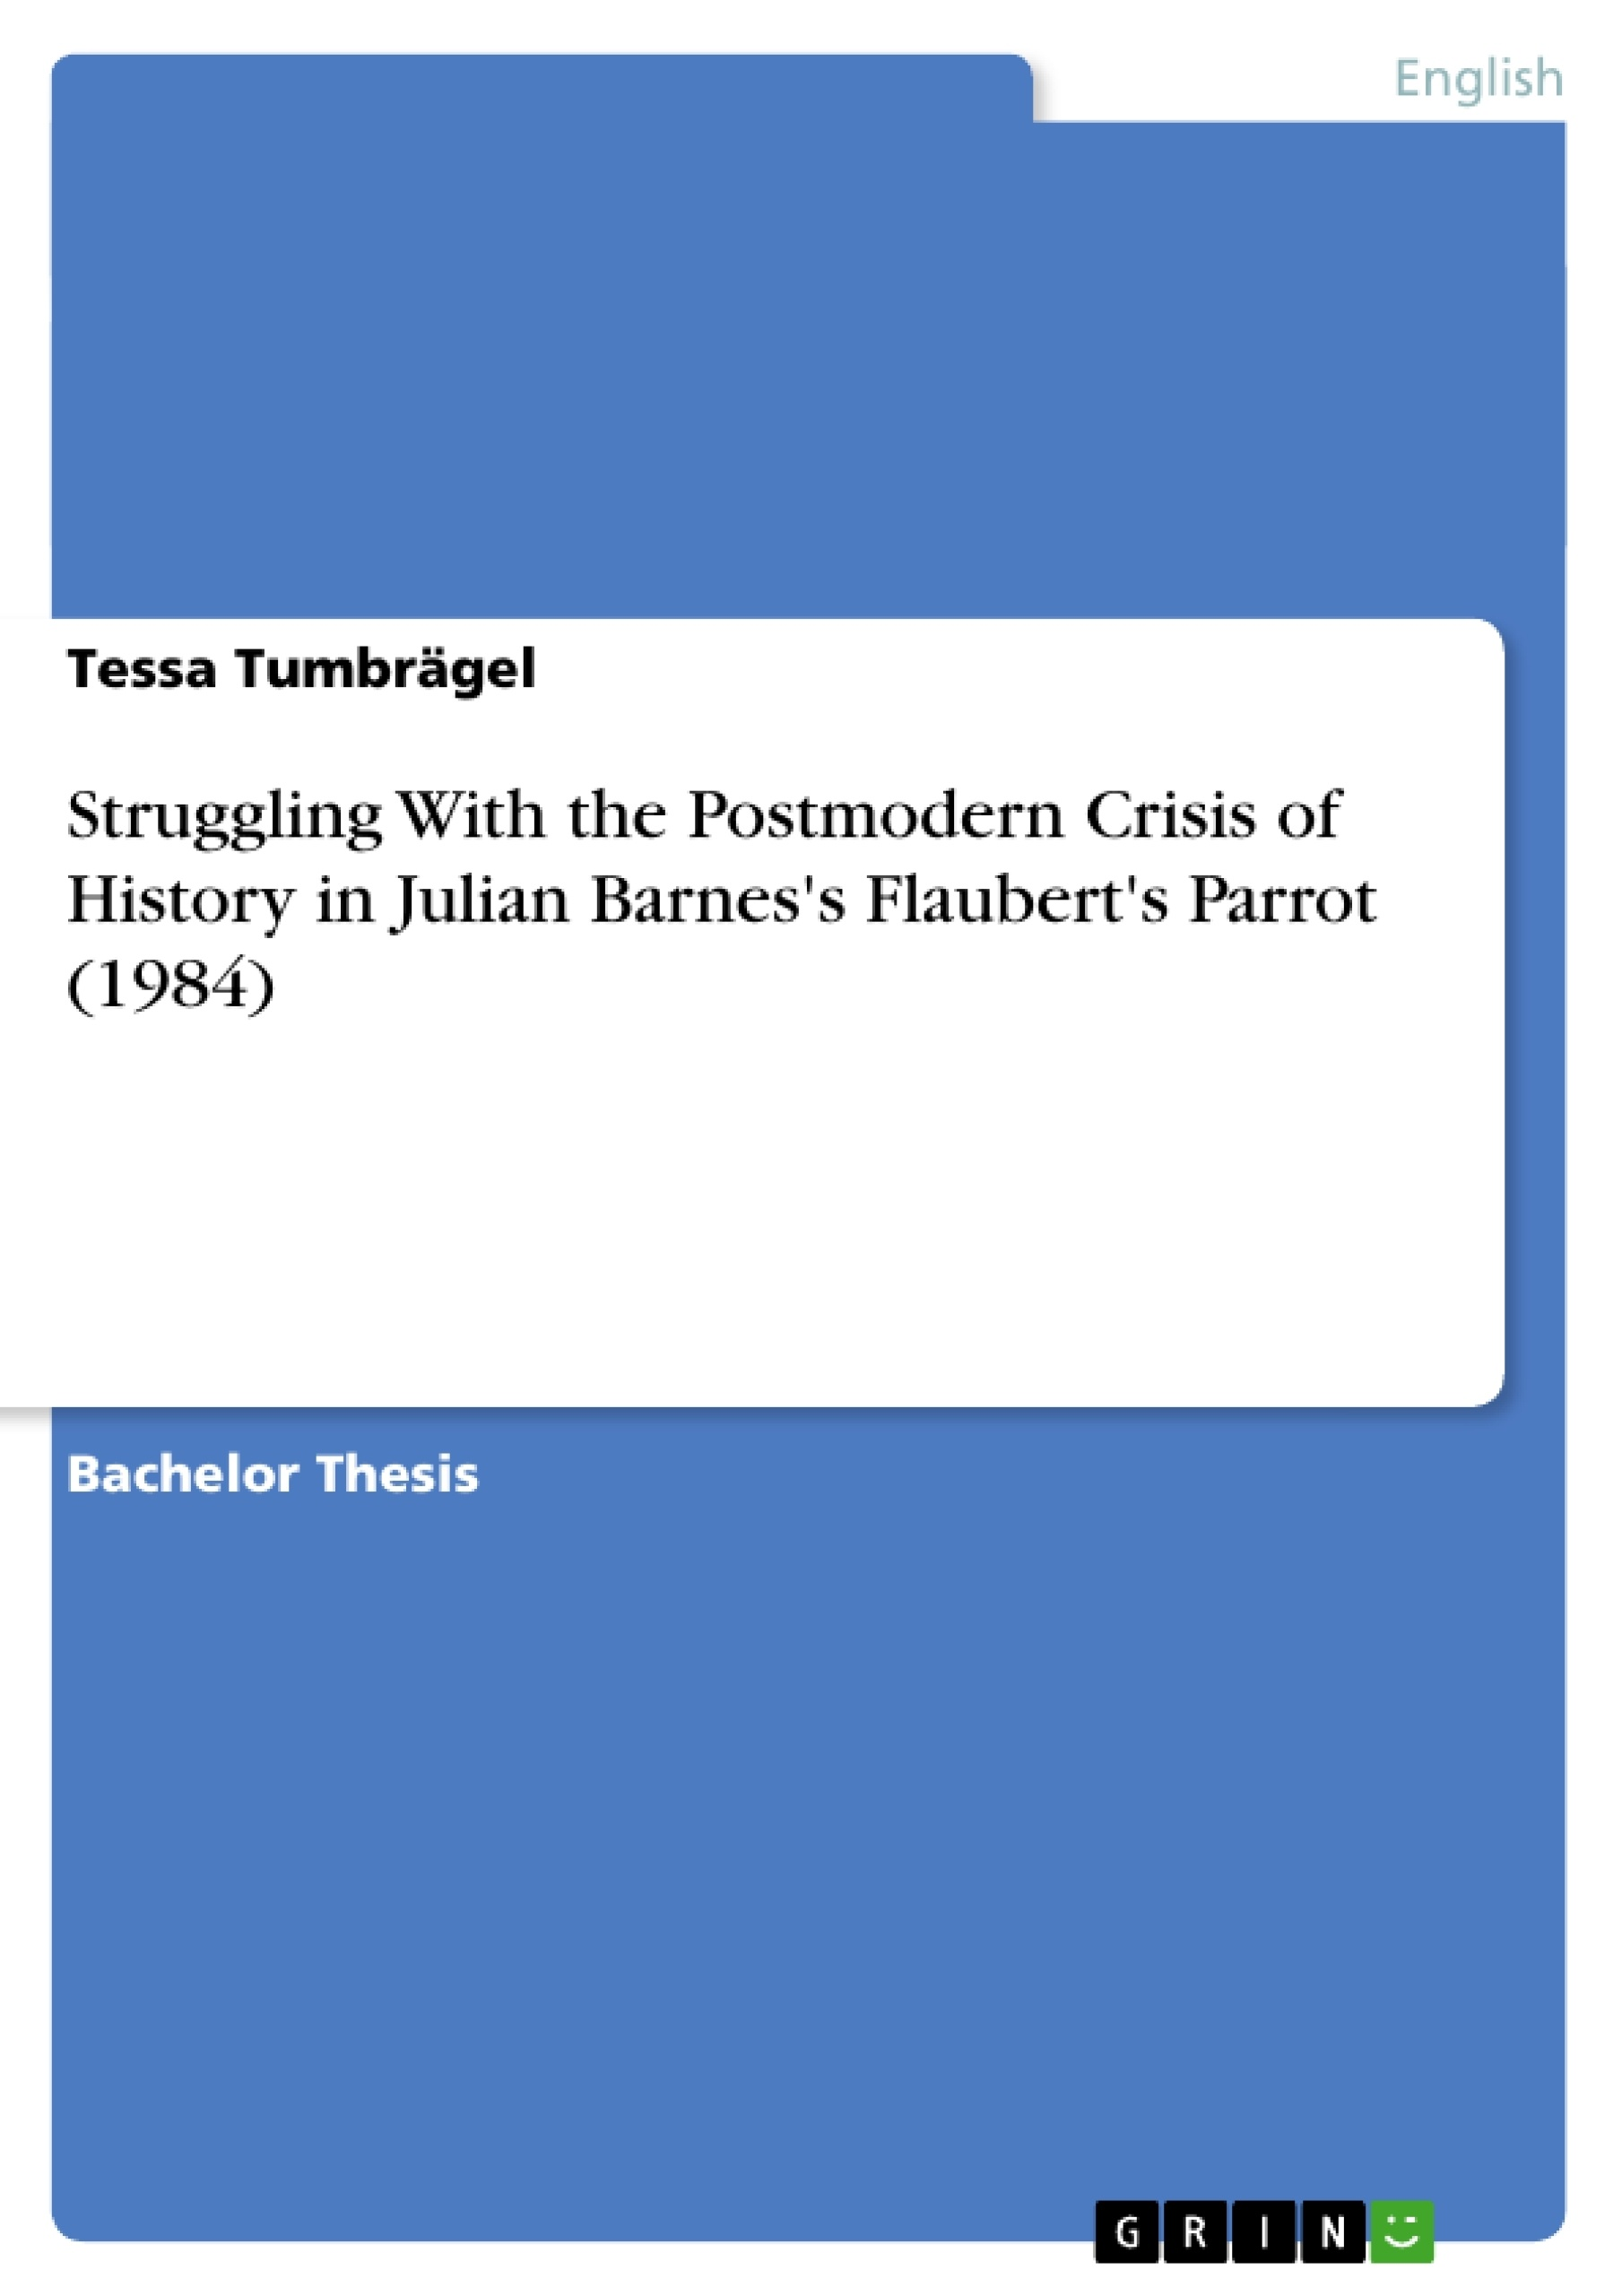 Title: Struggling With the Postmodern Crisis of History in Julian Barnes's Flaubert's Parrot (1984)